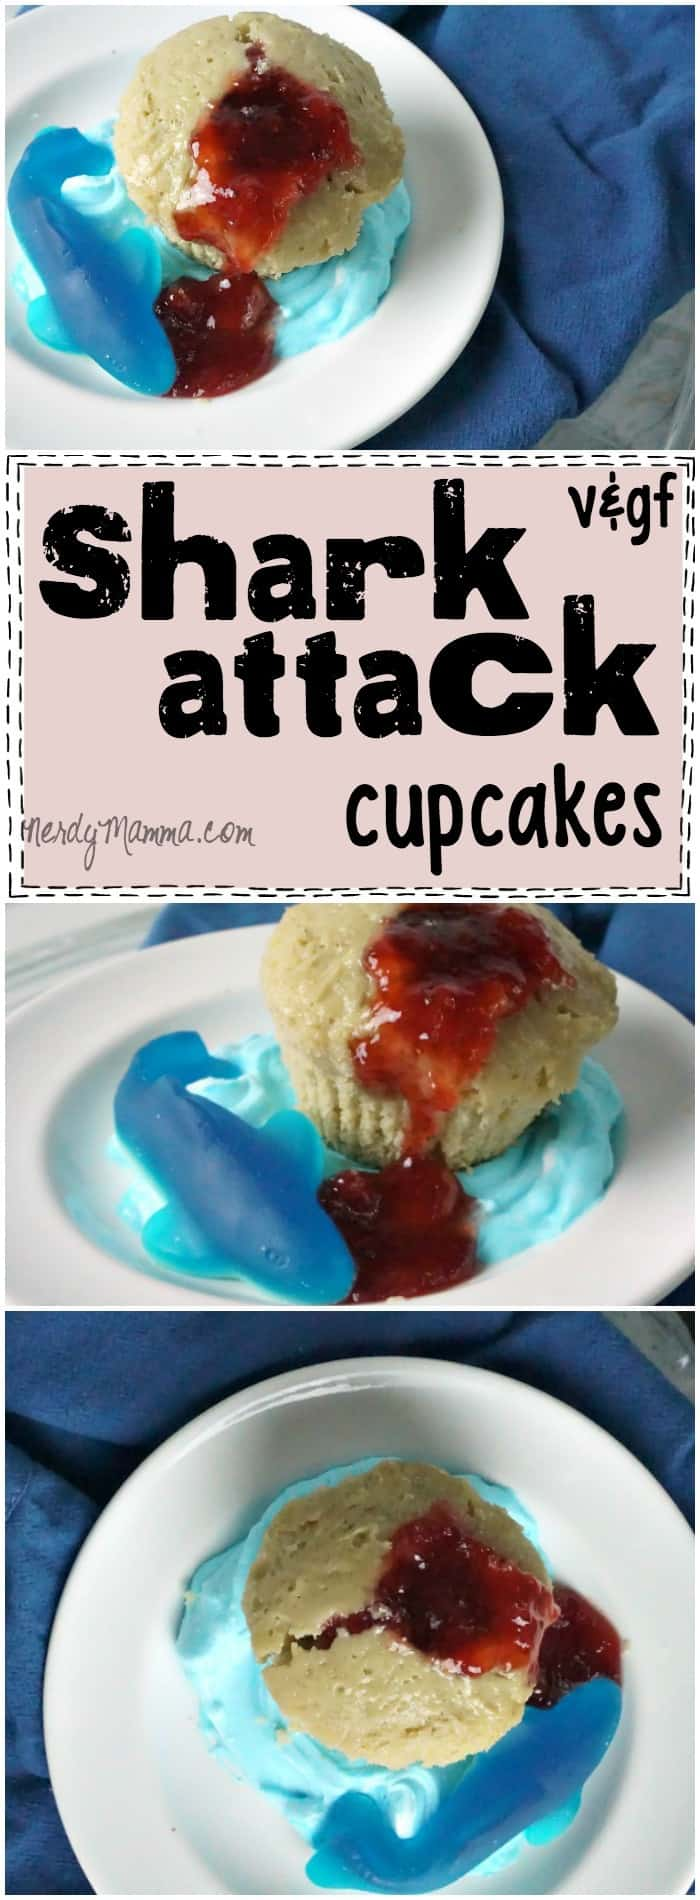 This recipe for gluten-free and vegan cupcakes for shark week is brilliant. So simple--but so cute. I love it!